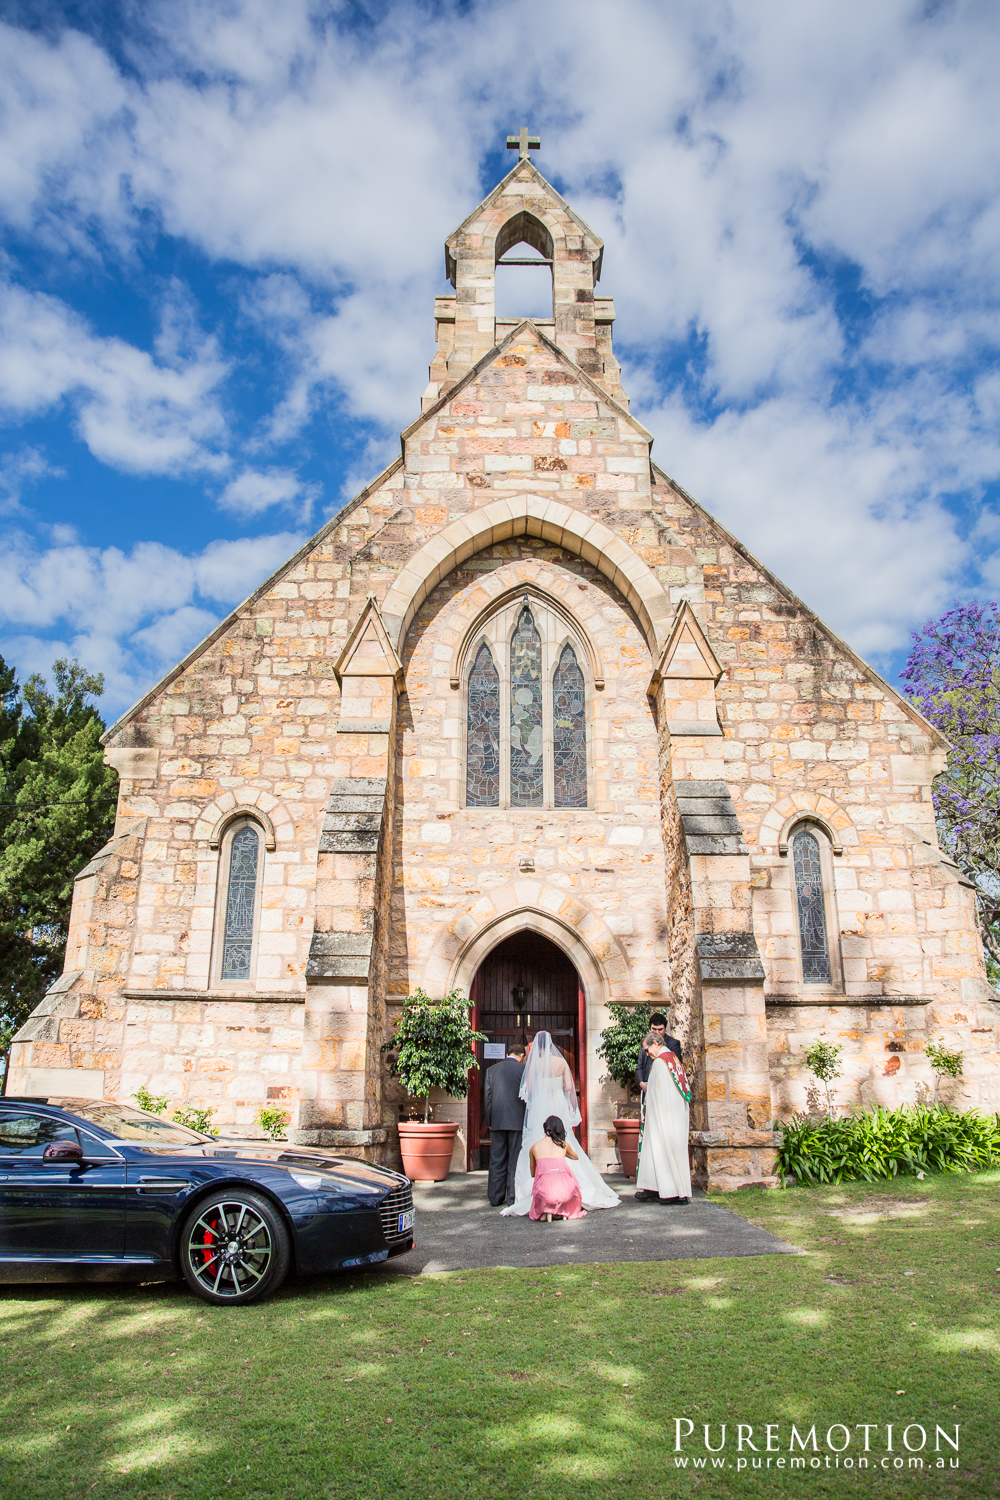 171020 Puremotion Wedding Photography Brisbane Cloudland St. Mary JolinJacky-0017